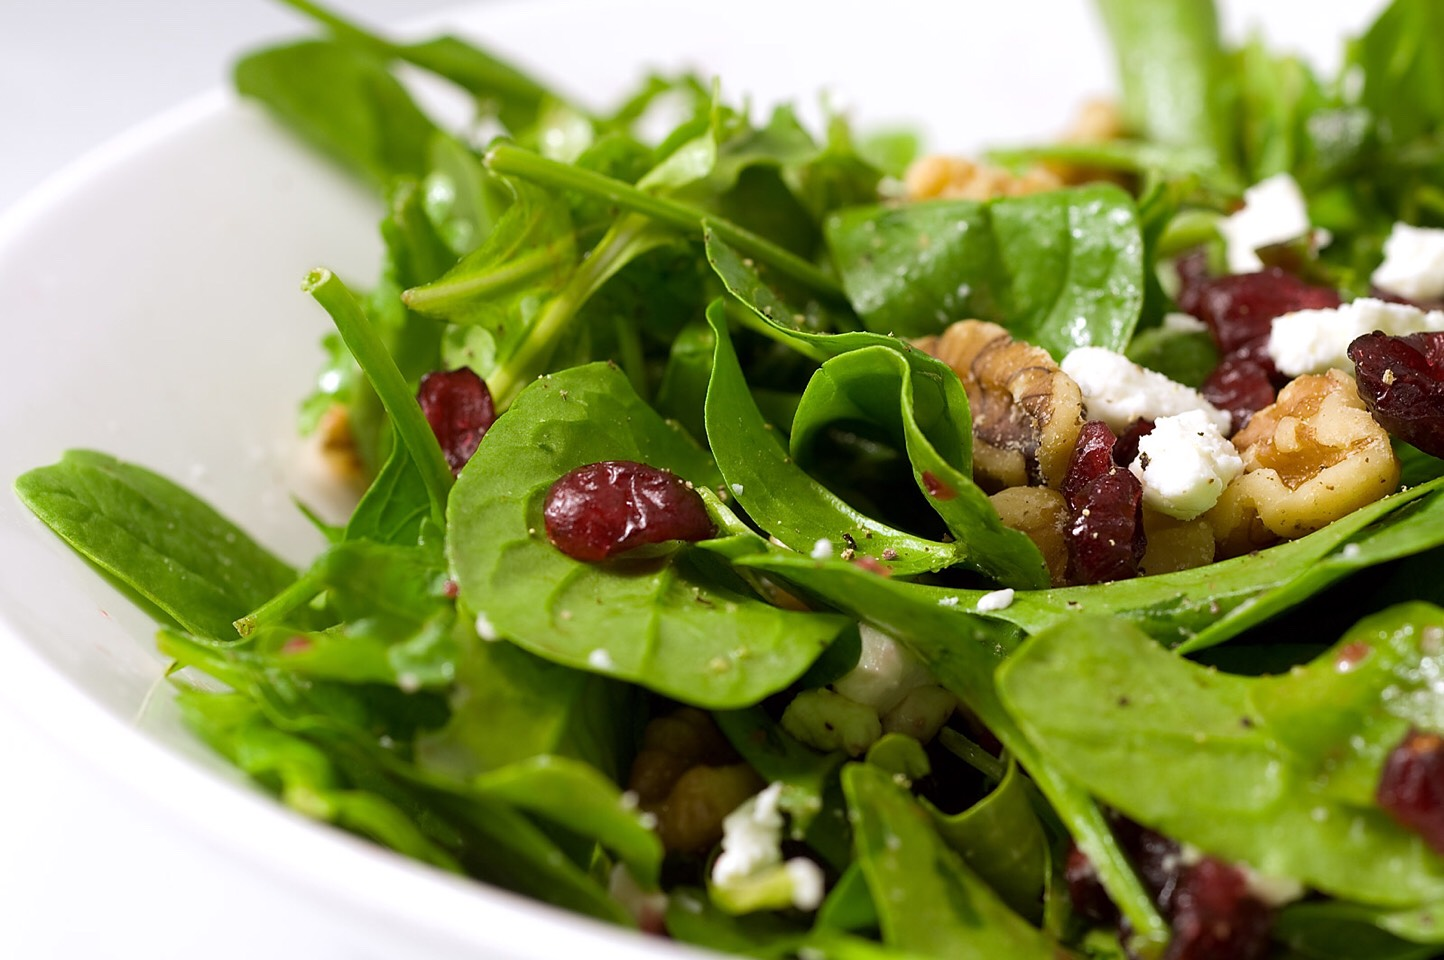 Salad is another great asset. A salad is made of vegetables! Be sure to use fat free dressings!